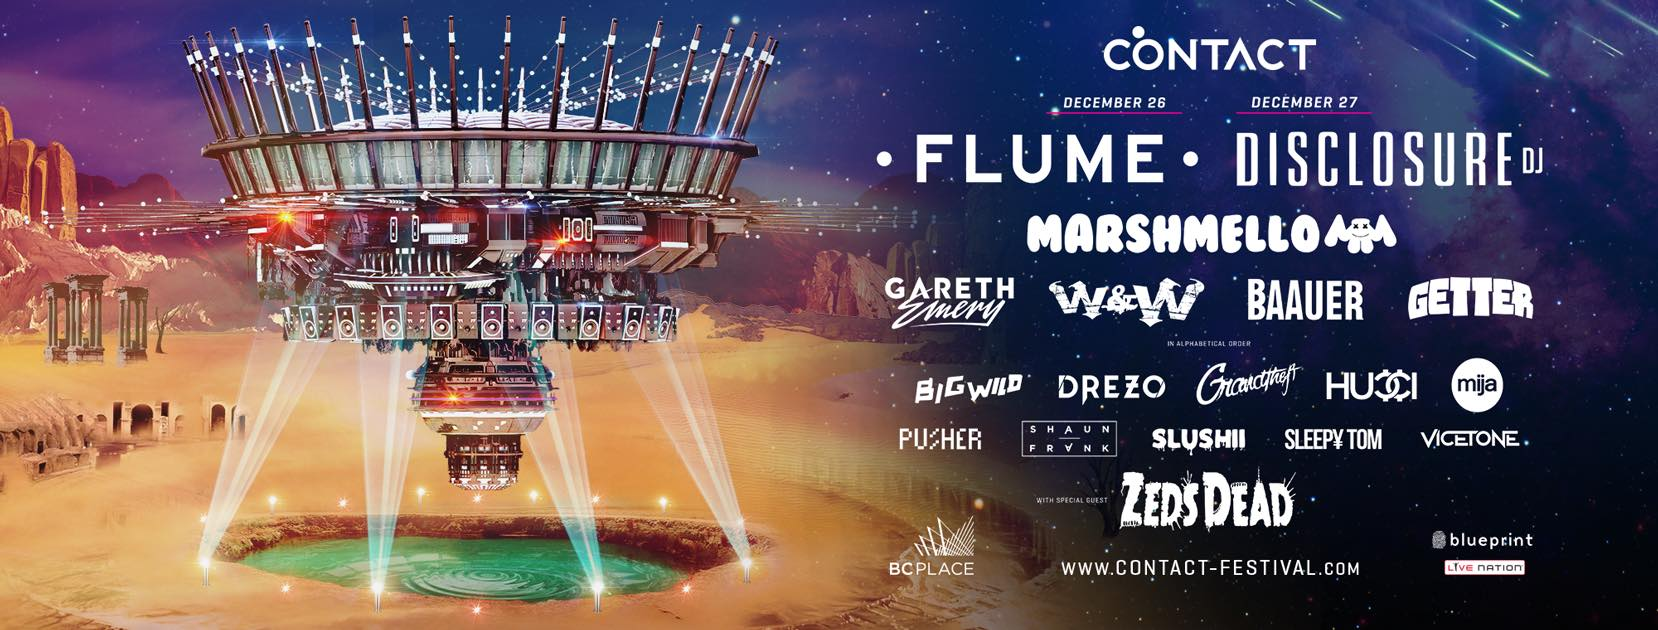 Contact winter music festival announces full lineup launches contact winter music festival announces full lineup launches presale malvernweather Images